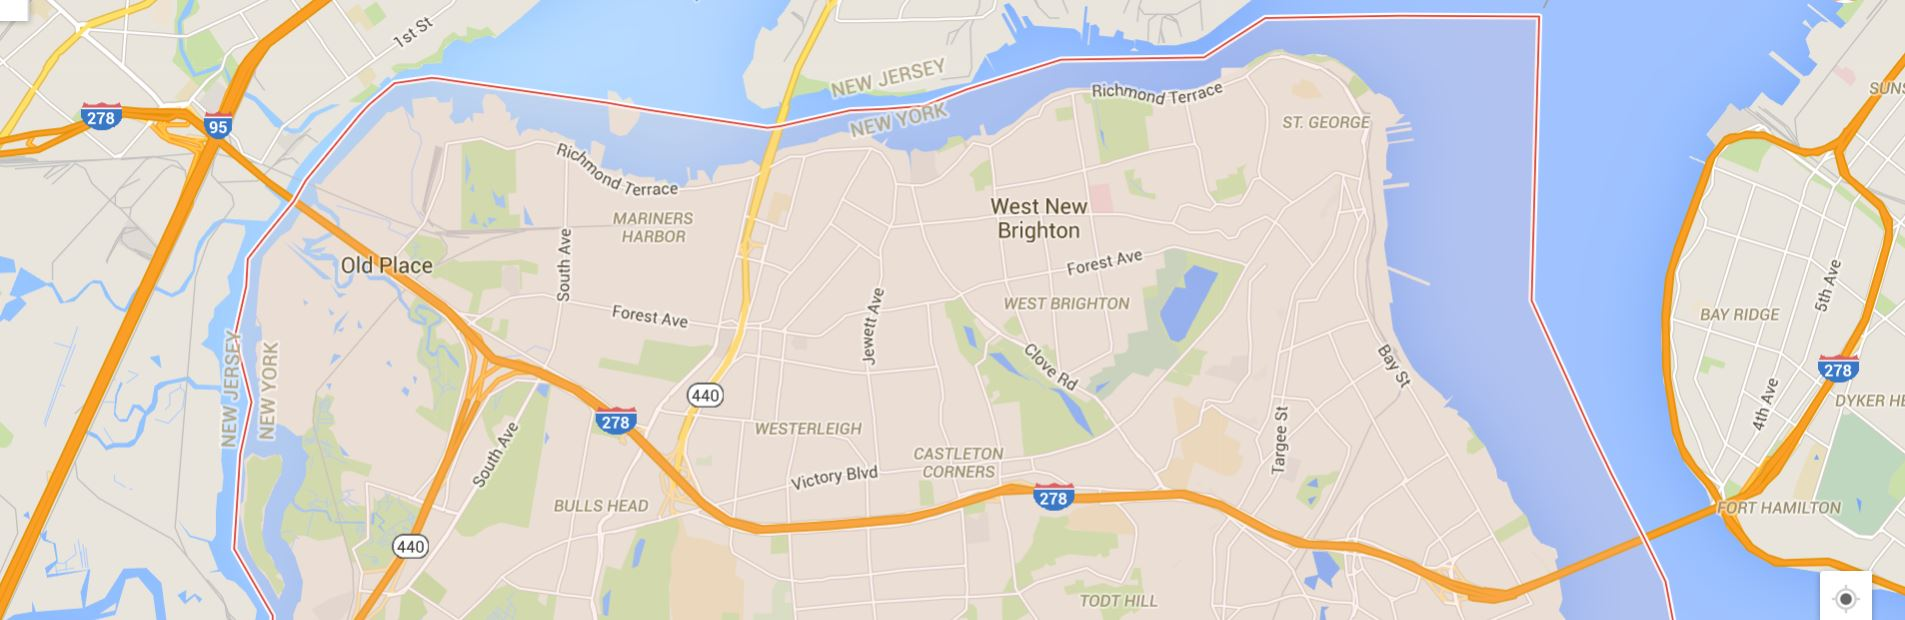 The surprisingly large Staten Island. Home of few gas stations conveniently near the interstate!